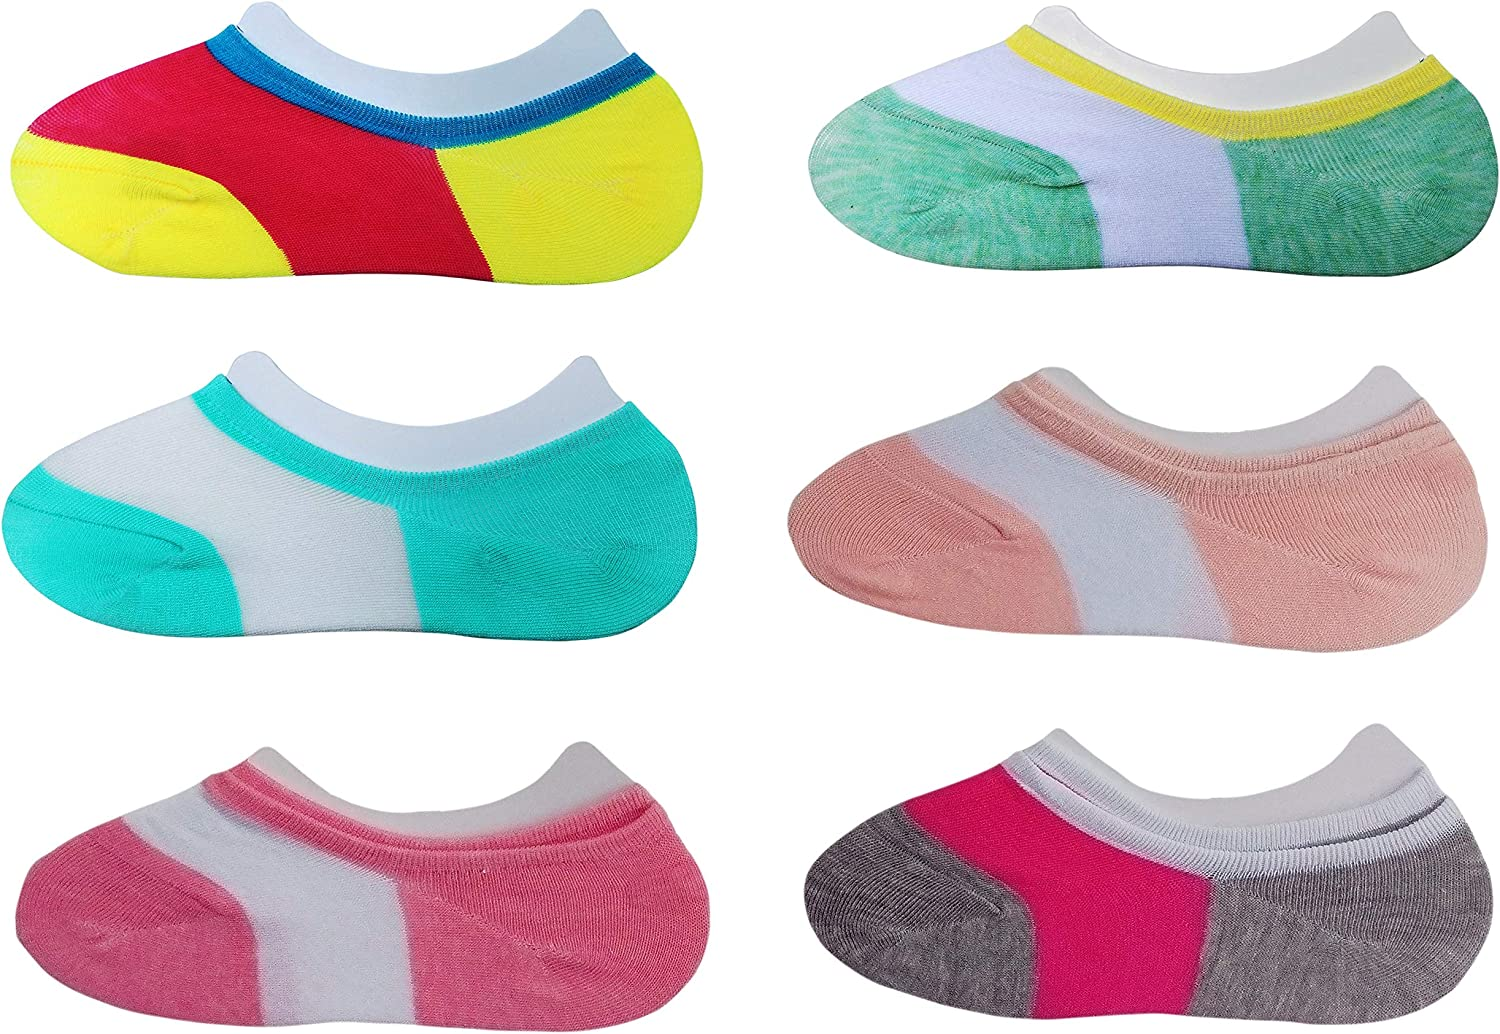 b7ad2f0295f73 Liner No Show Low Cut Socks For Flats Athetic Cotton For Kids Girls ...